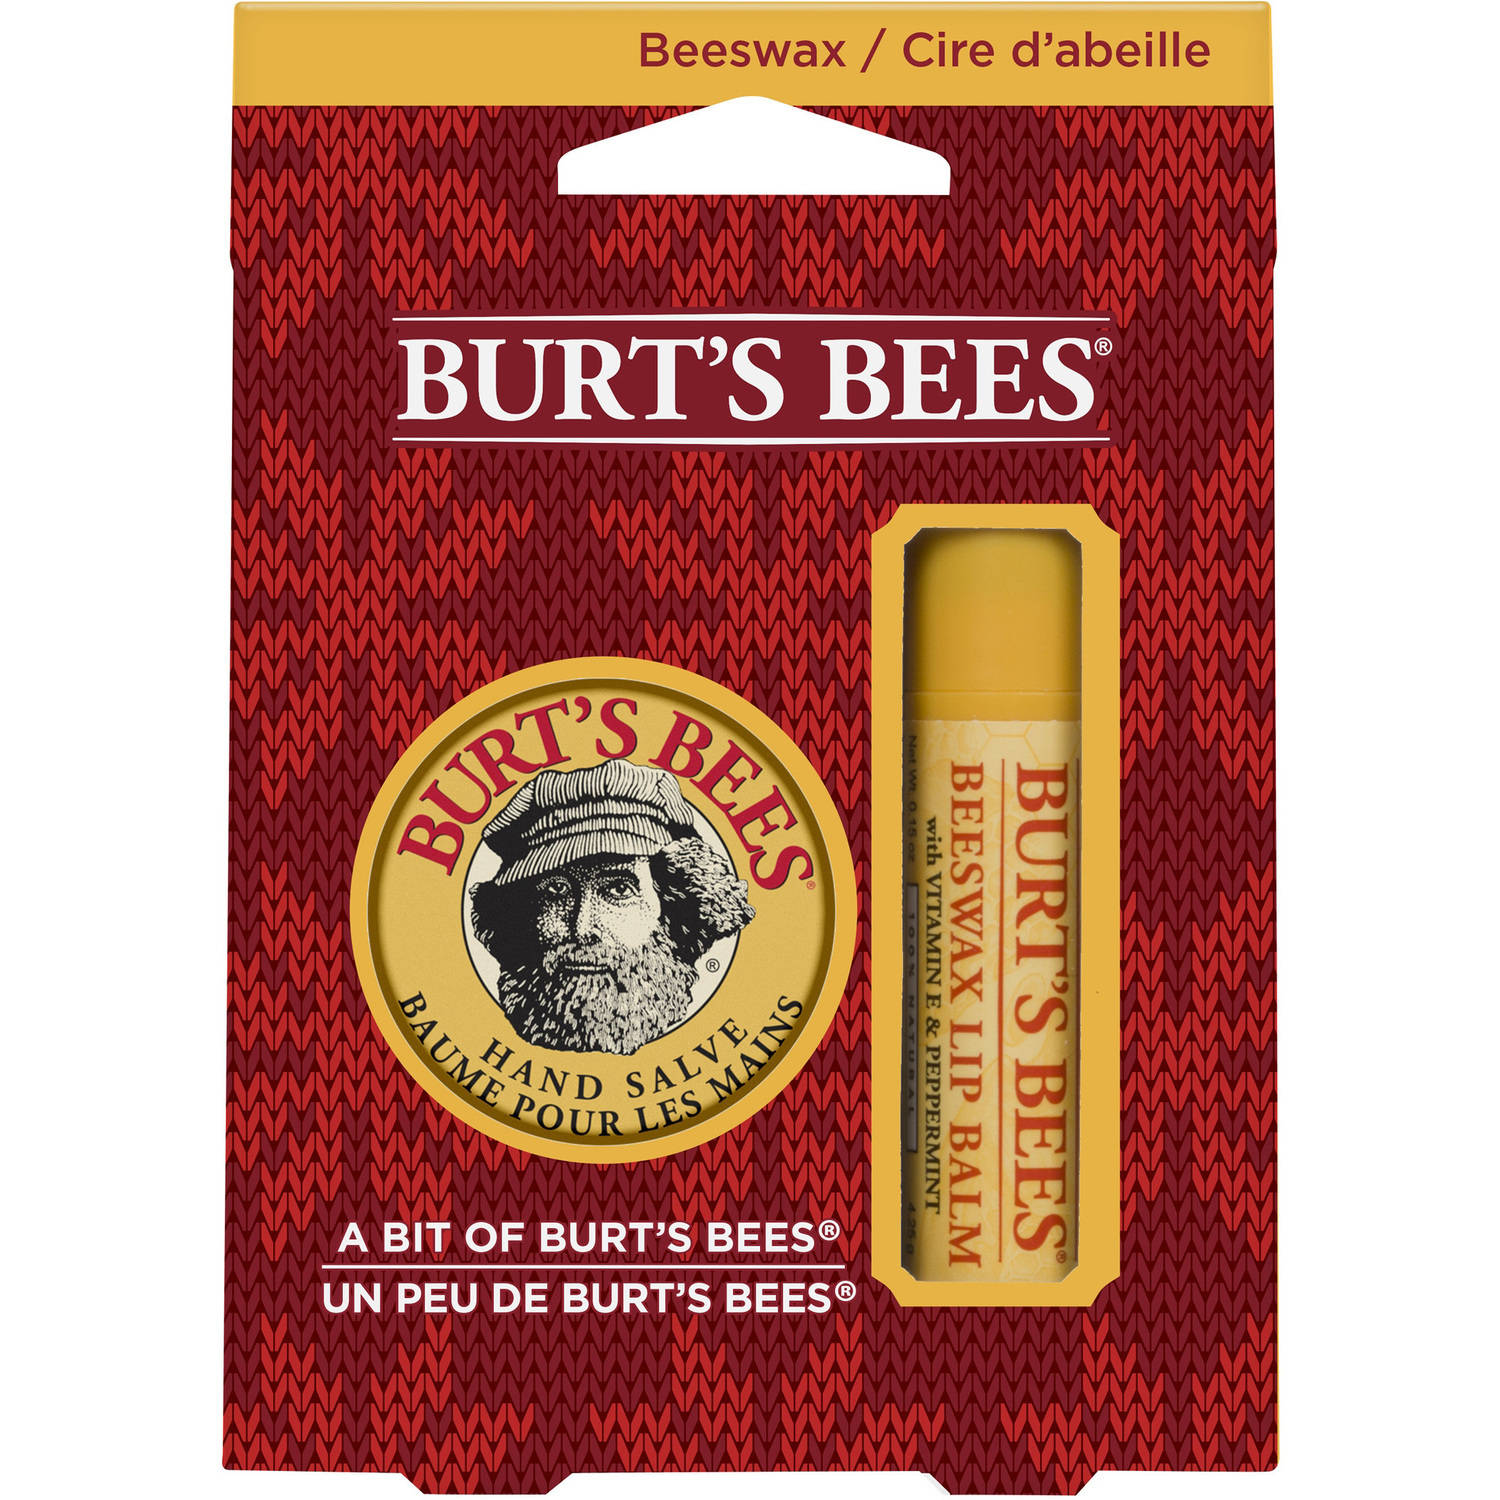 Burt's Bees A Bit of Burt's Bees Beeswax Holiday Gift Set, 2 pc